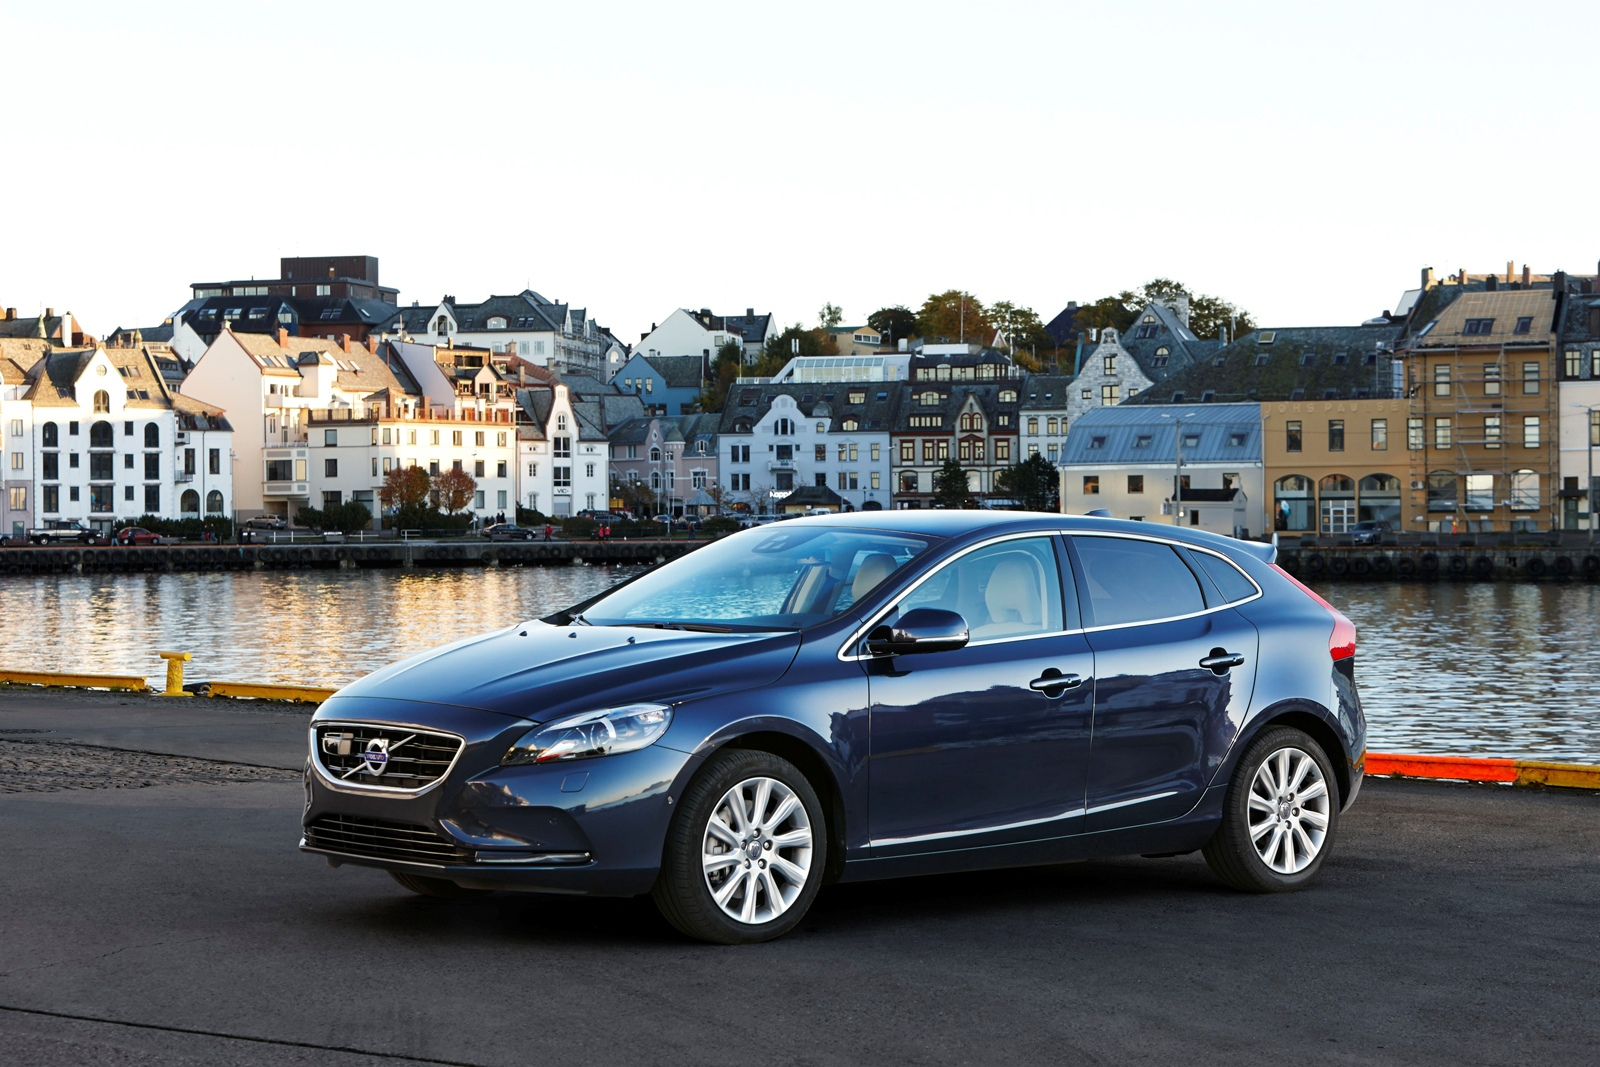 volvo-introduces-powerful-and-efficient-new-engines-for-v40-d4-and-t5-models-photo-gallery_14